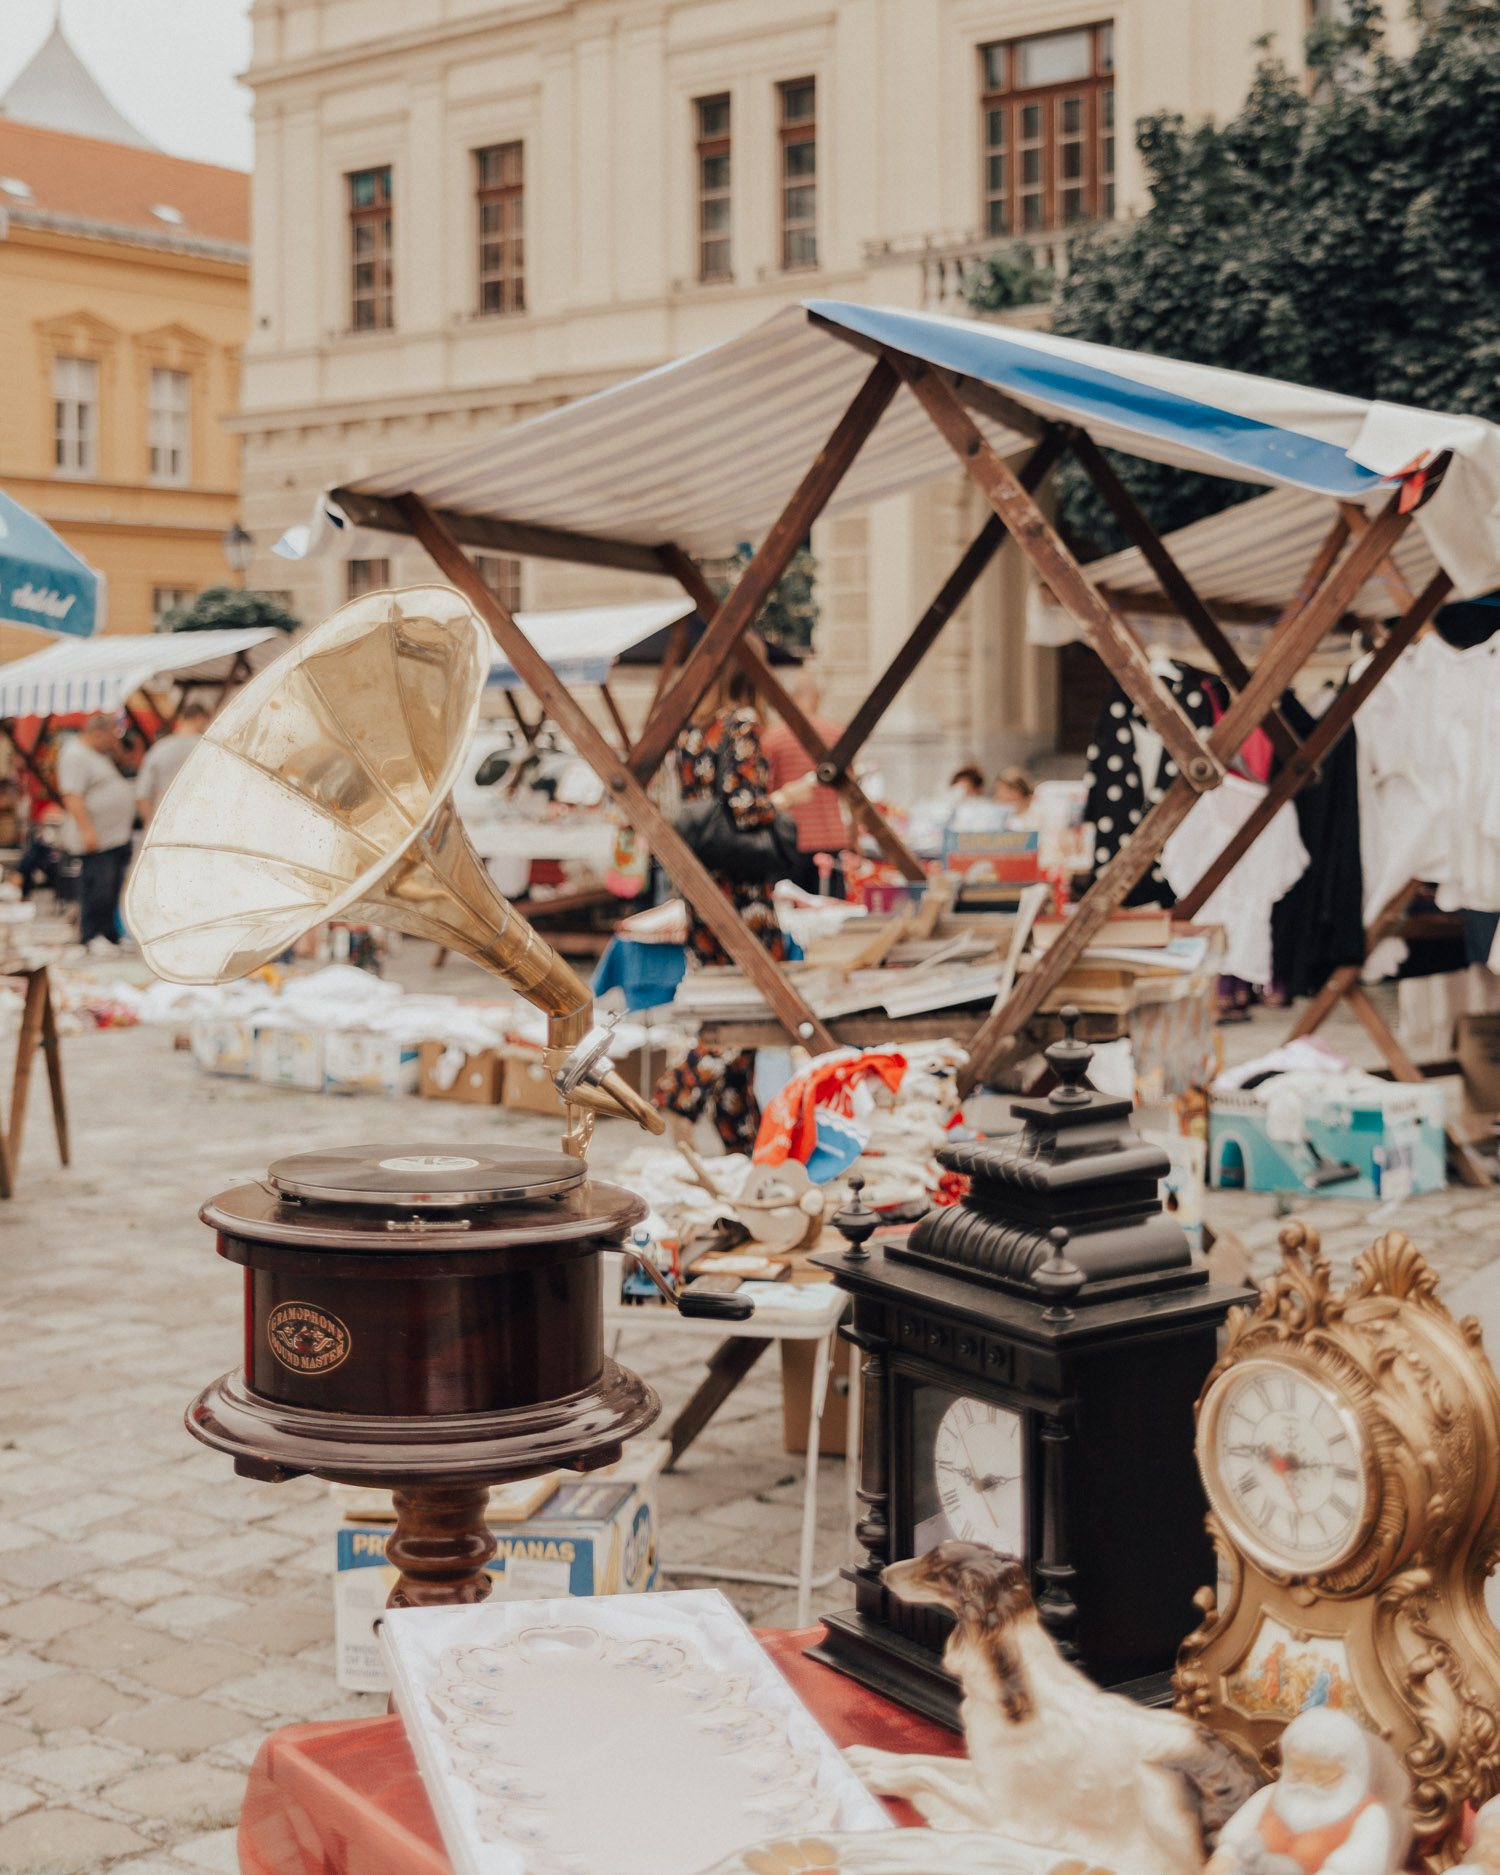 Things to Do in Slavonia |Visit the Antique market in Osijek